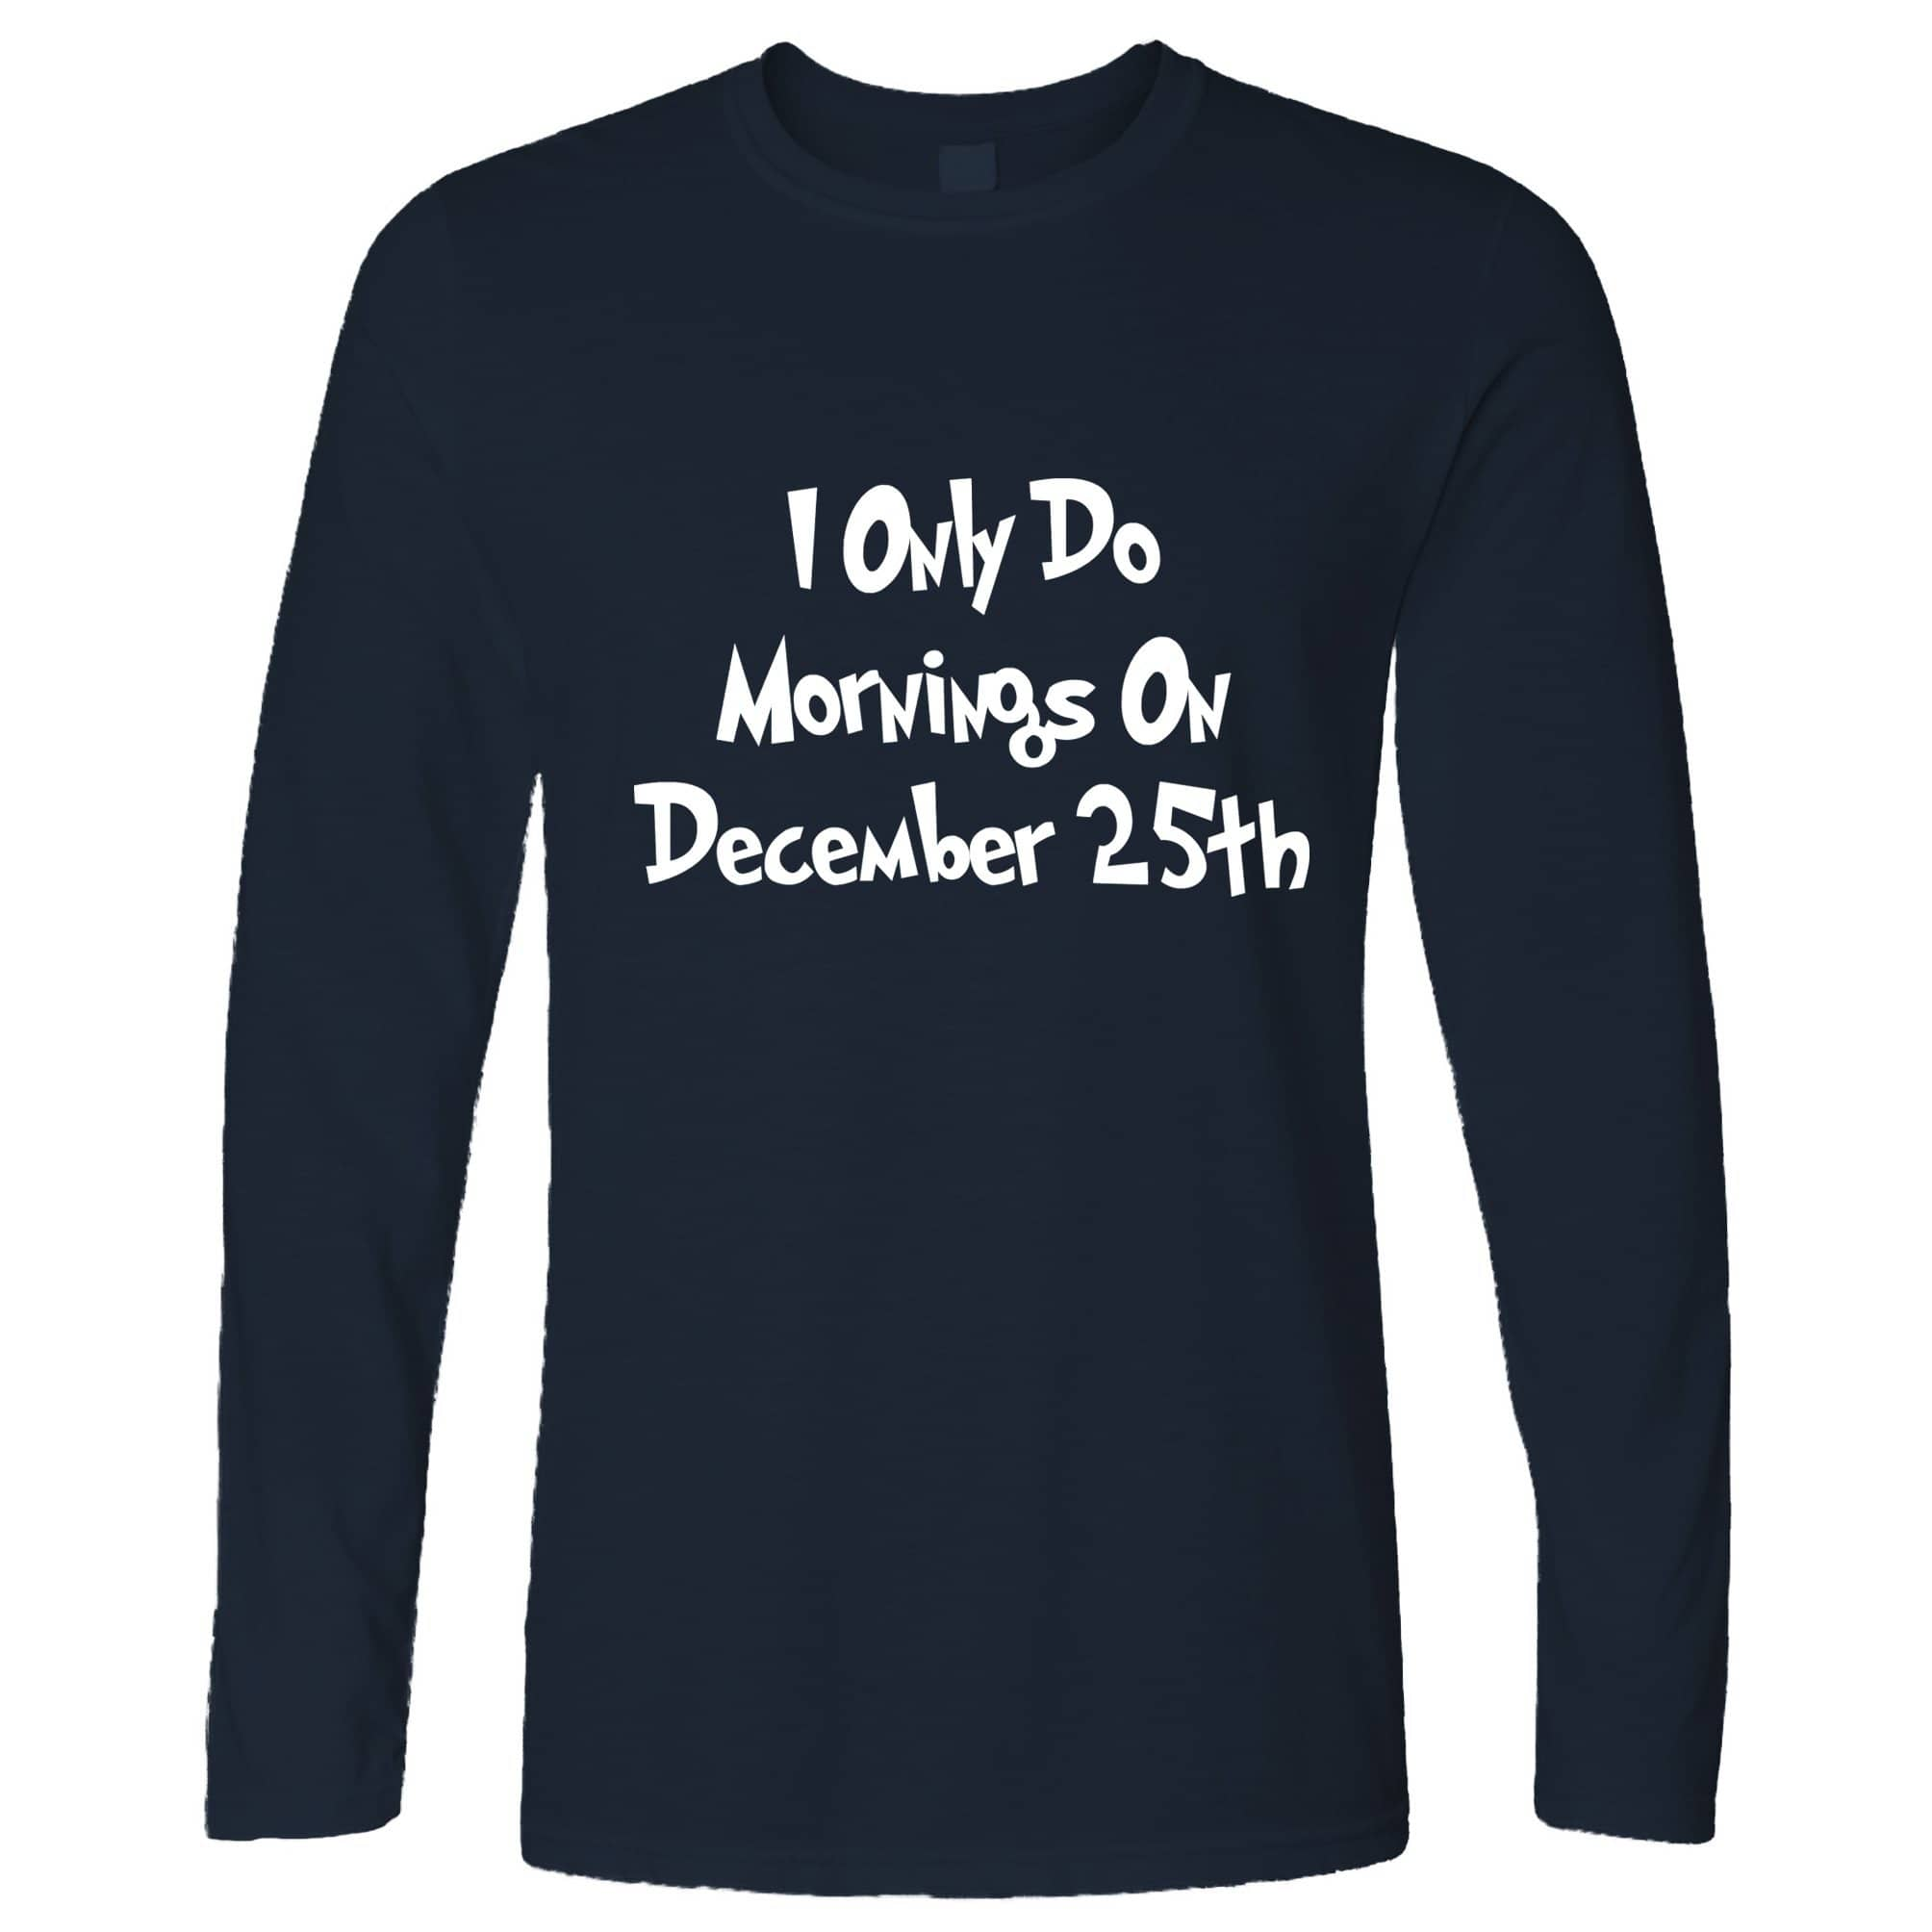 Joke Long Sleeve I Only Do Mornings On December 25th T-Shirt